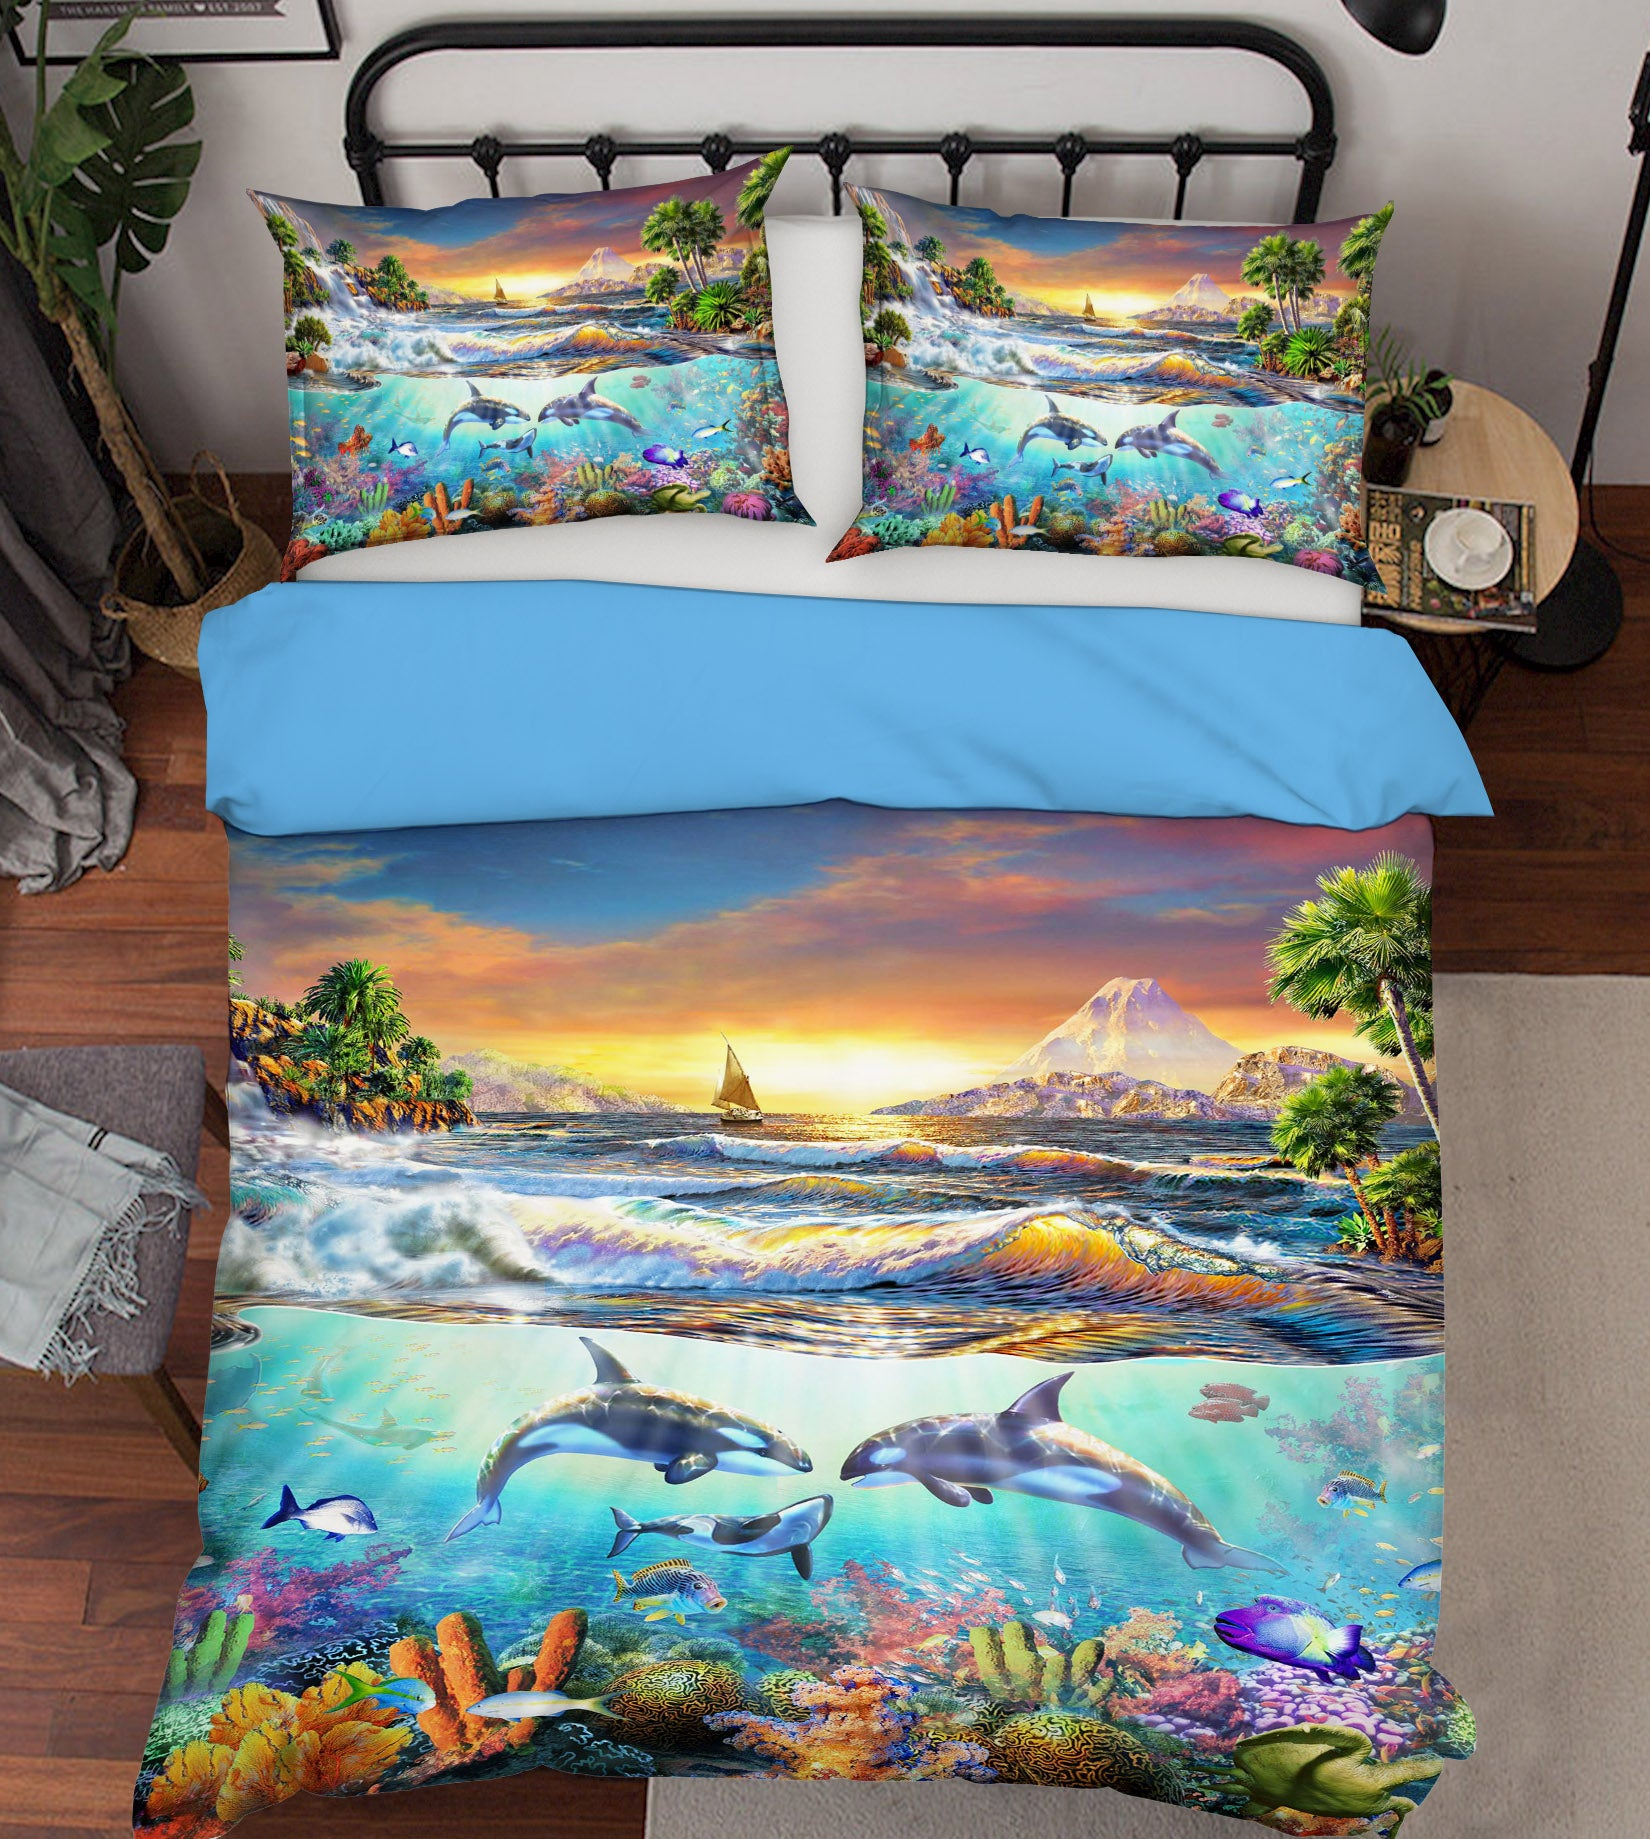 3D Atlantic Dolphins 2024 Adrian Chesterman Bedding Bed Pillowcases Quilt